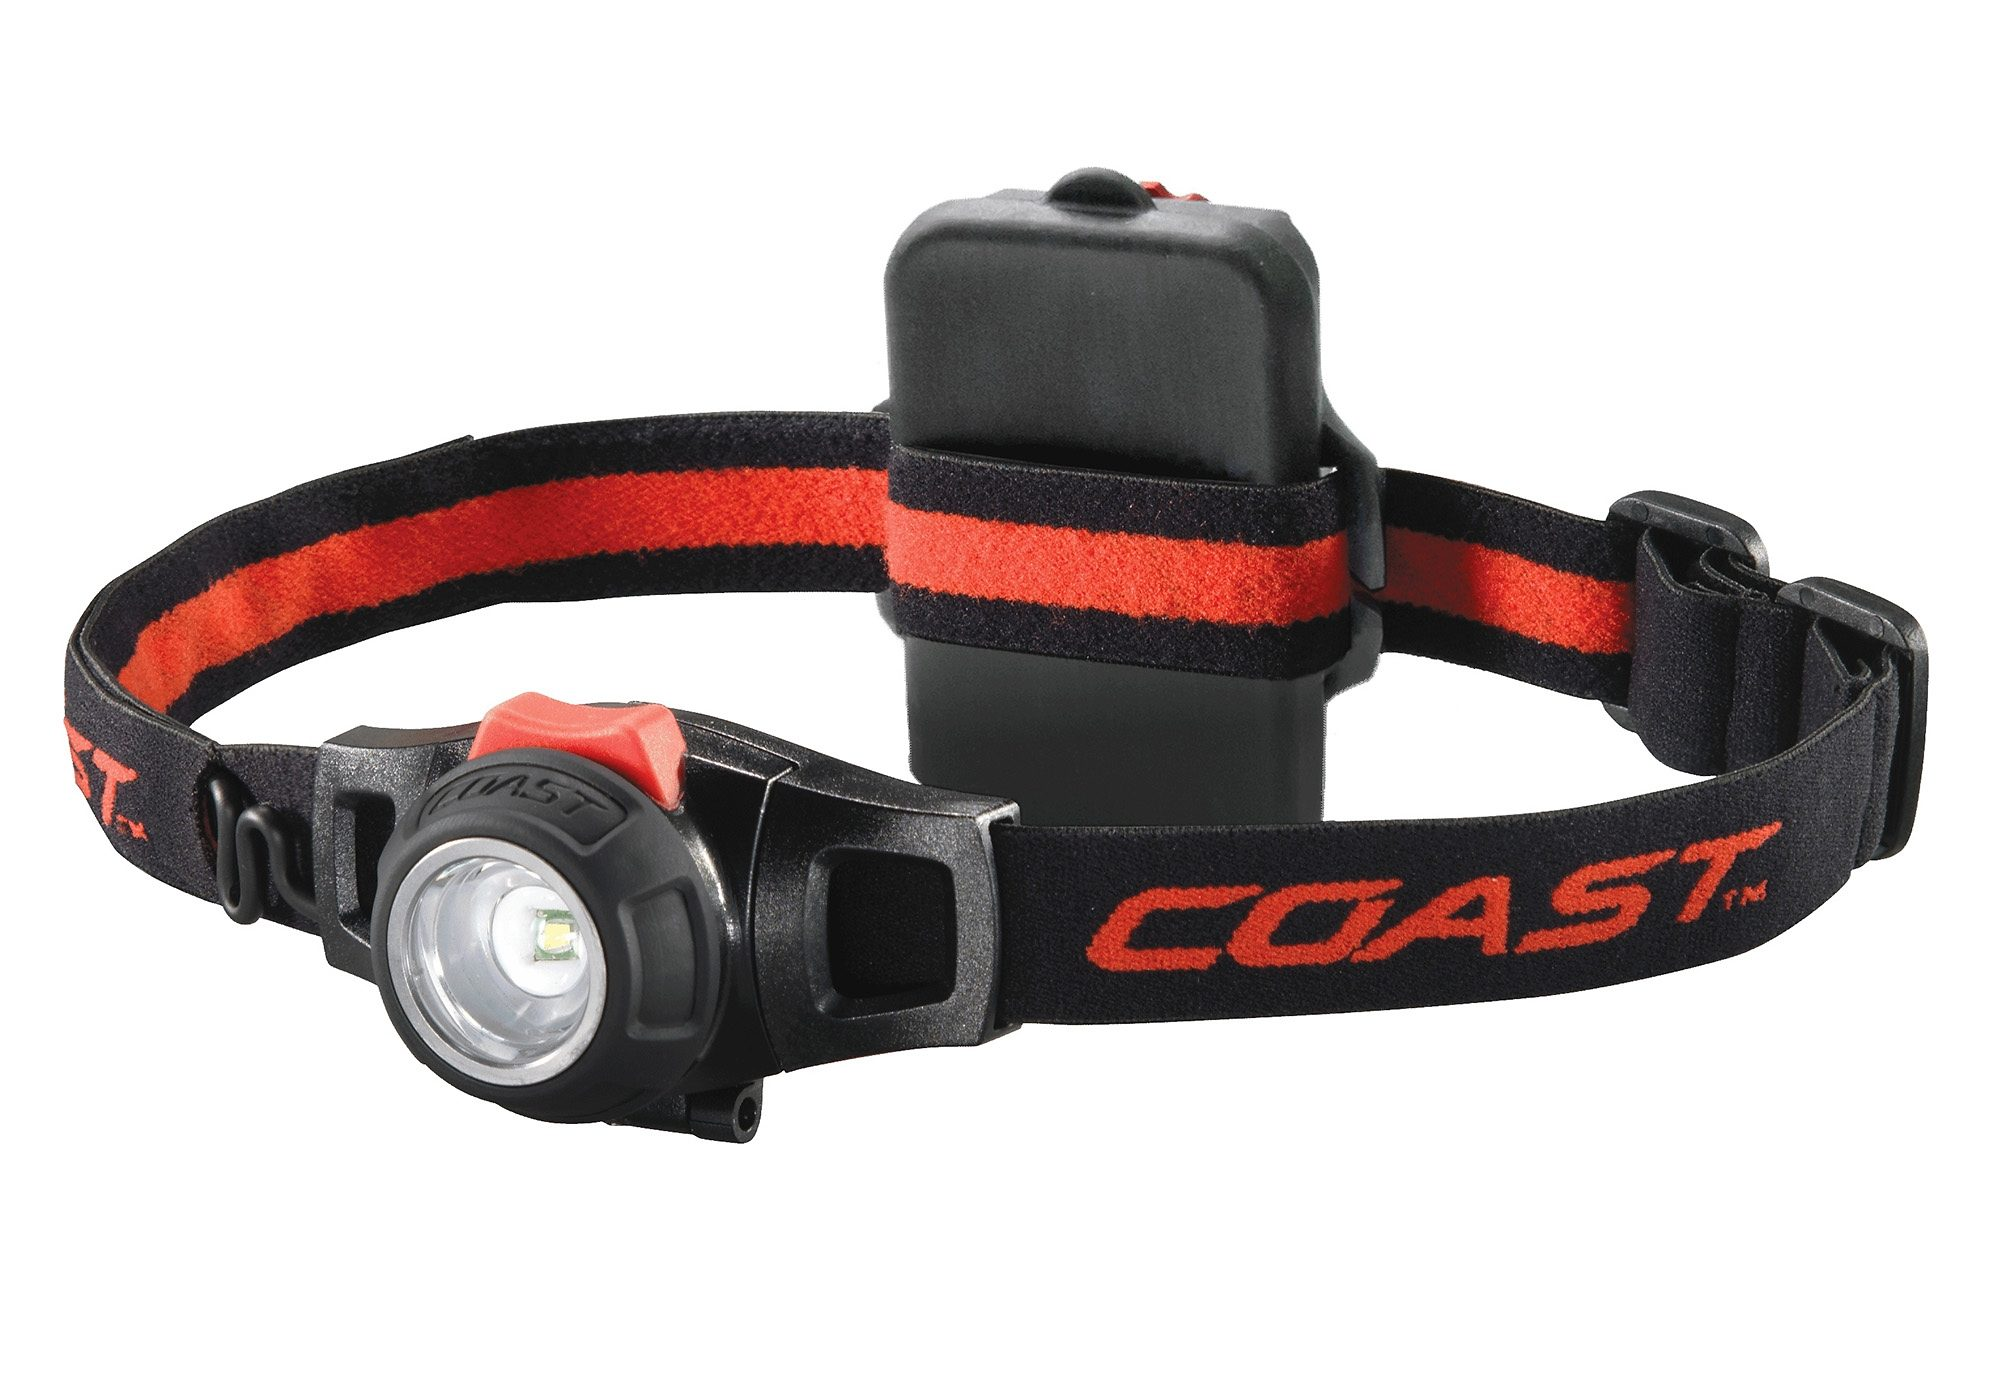 LED Stirnlampe, »Coast HL7«, COAST